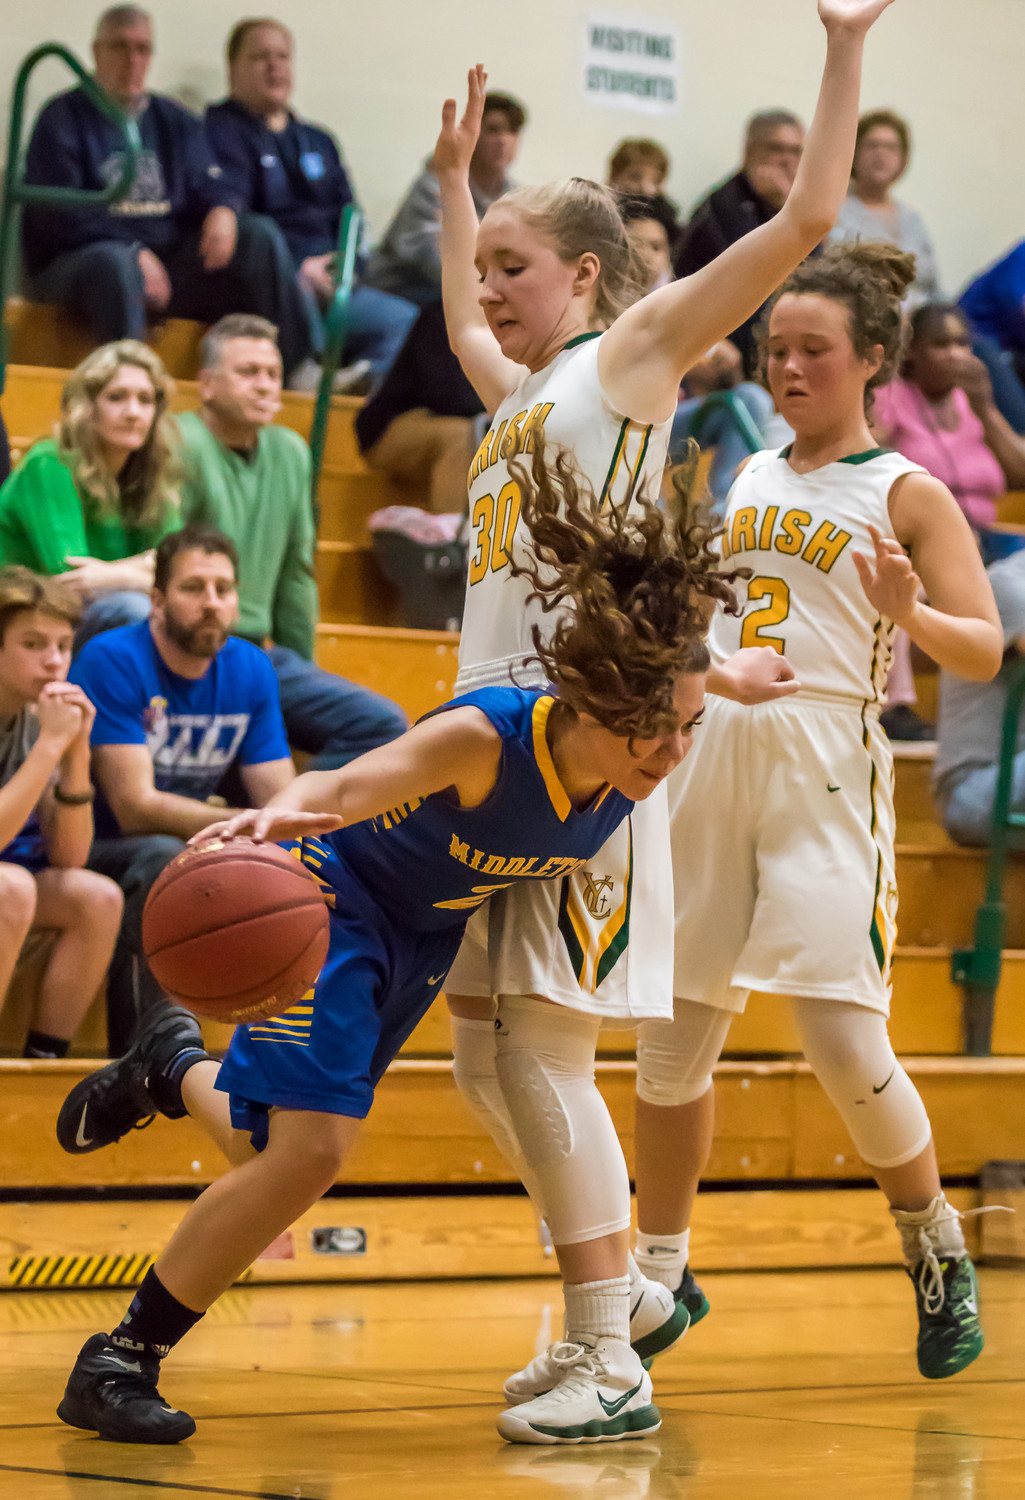 Makaila Nester drives to the hoop Feb. 20 vs. York Catholic in playoff action.